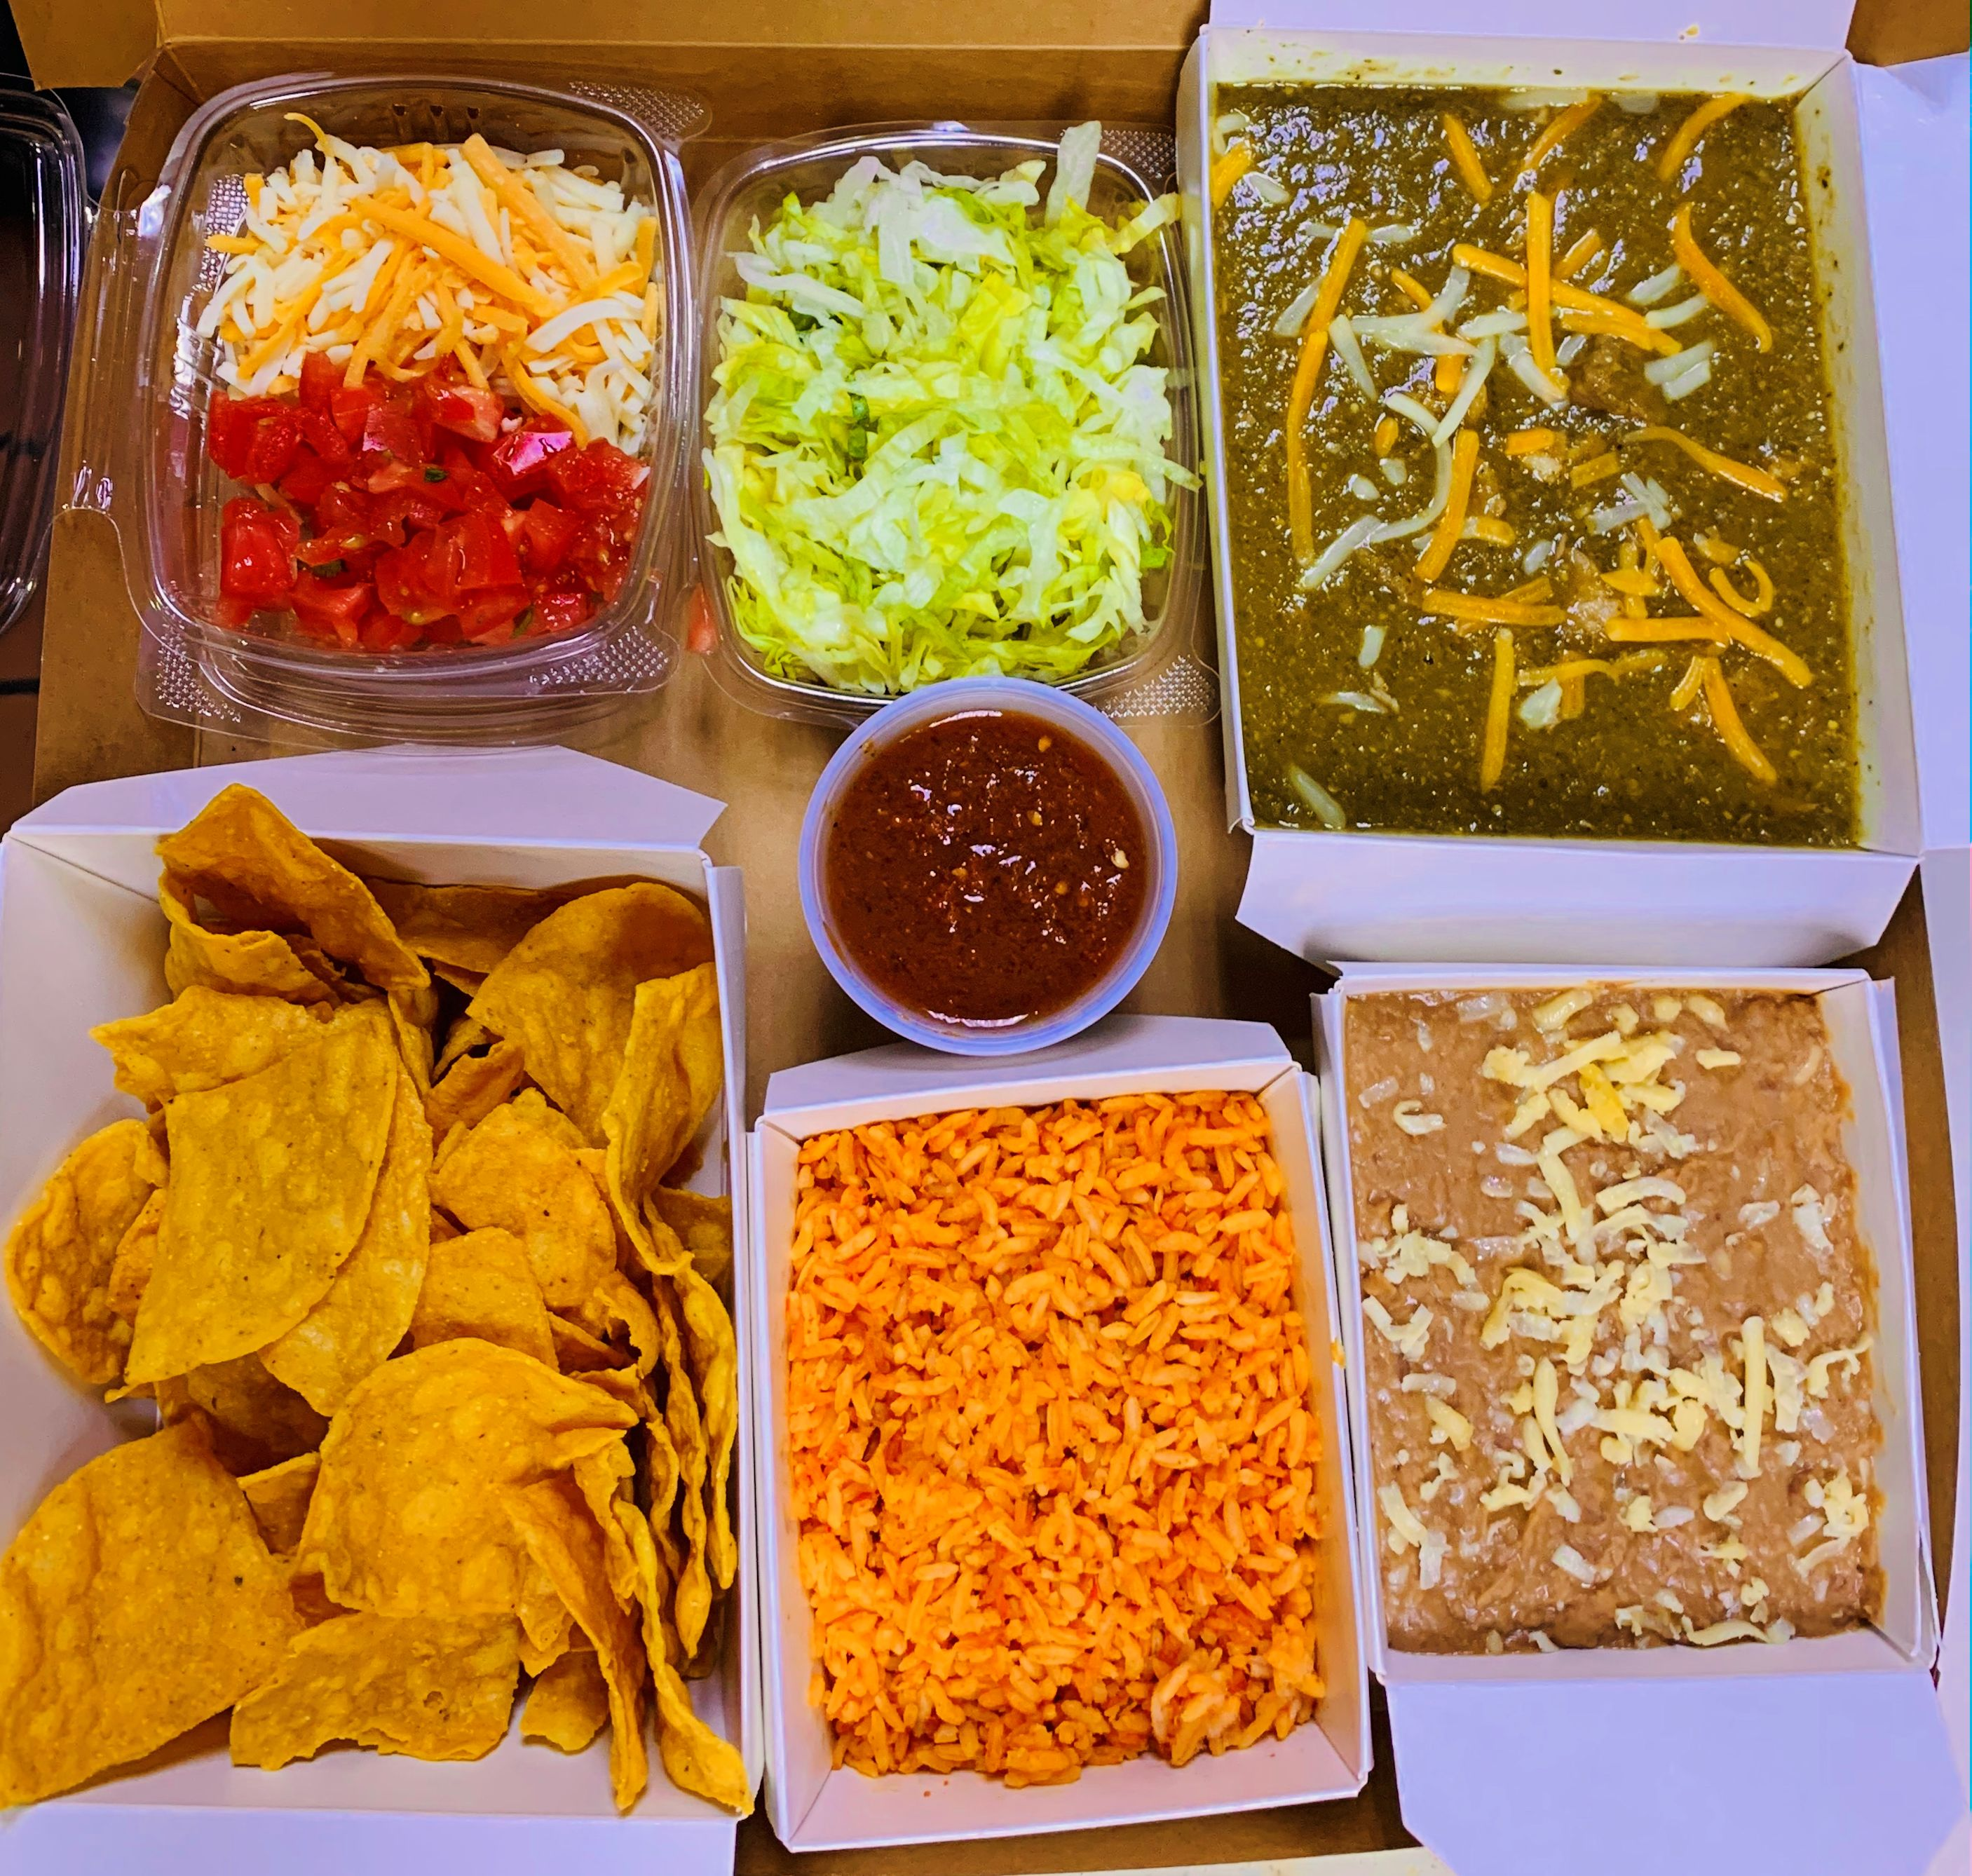 Mexican Bento Box at Guadalajara Grill, Bar, & Table Side Salsa in Tucson Arizona.